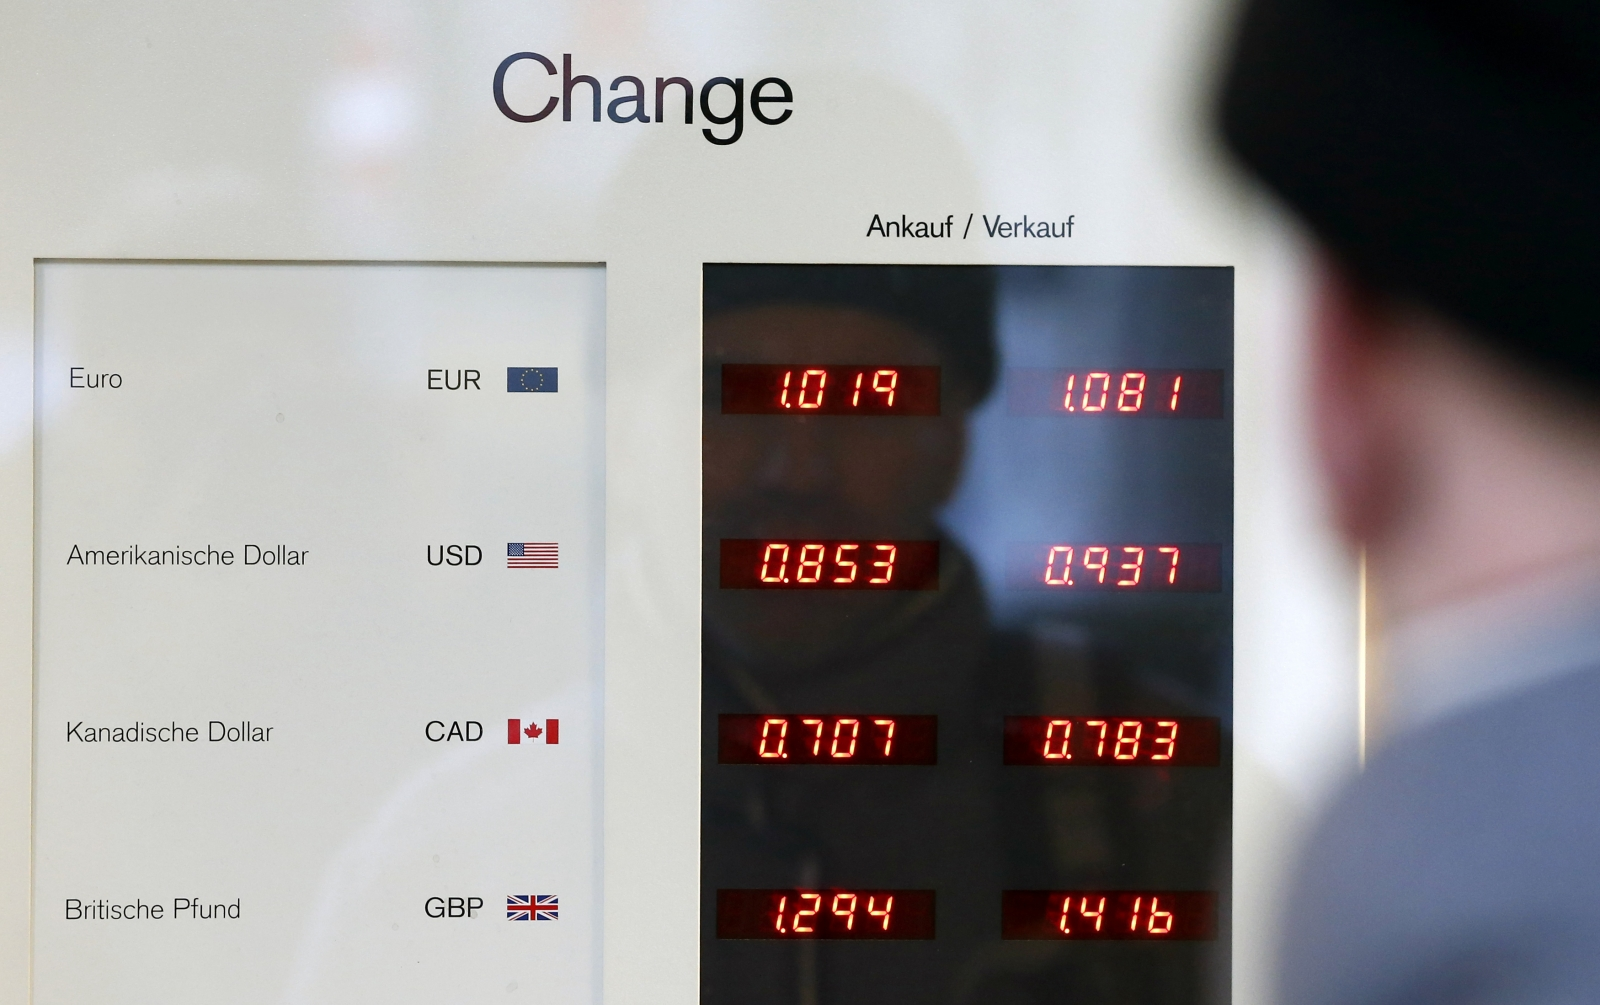 A man looks at a board showing currency exchange rates in Bern January 15, 2015. The Swiss National Bank shocked financial markets on Thursday by scrapping a three-year-old cap on the franc, sending the safe-haven currency soaring against the euro and sto